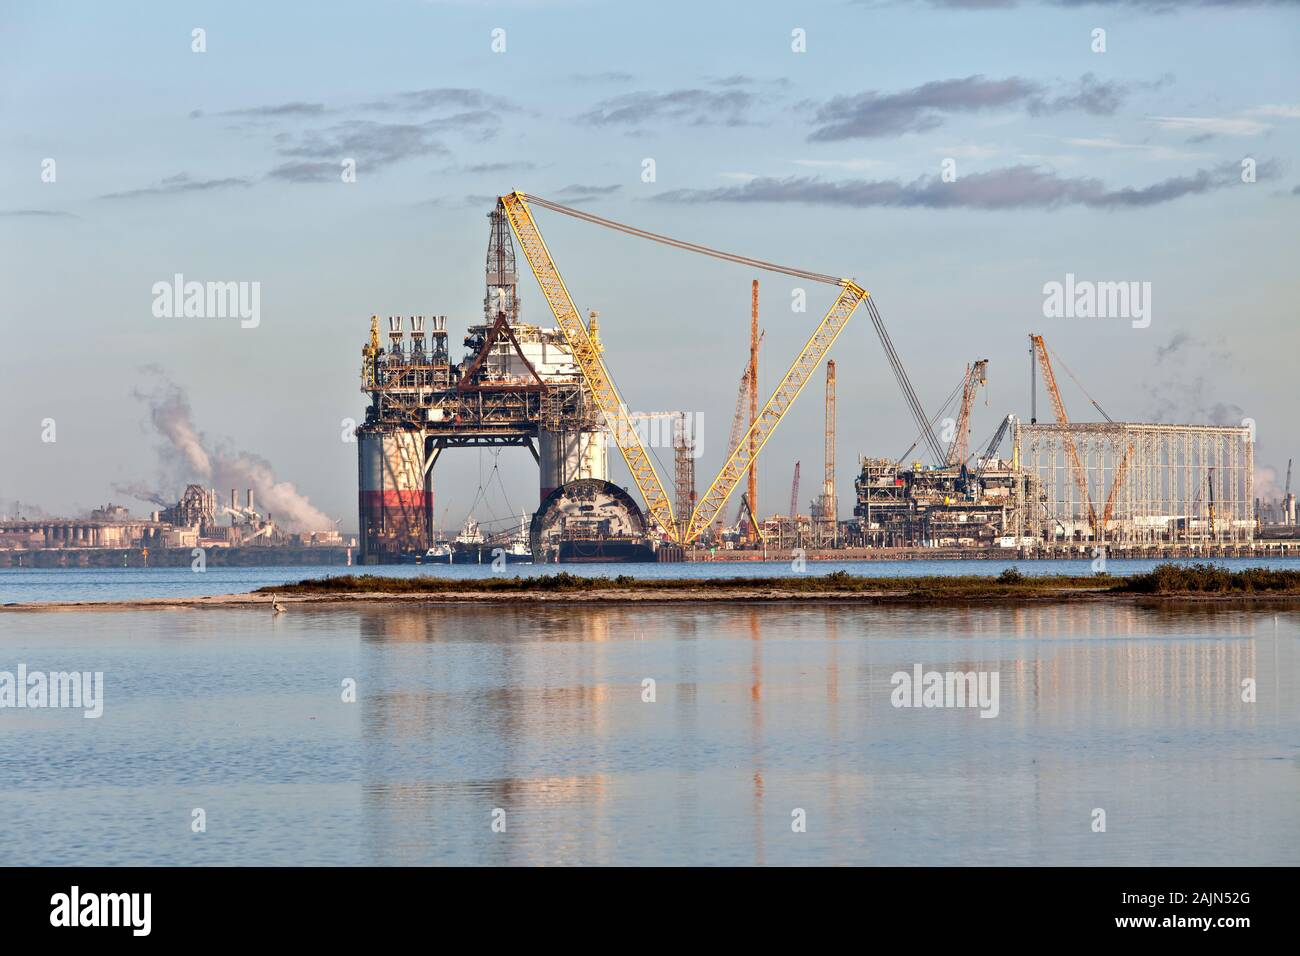 Construction of 'Big Foot' deepwater oil & gas platform nearing completion, swing booms, at dawn,  Ingleside Bay. Stock Photo